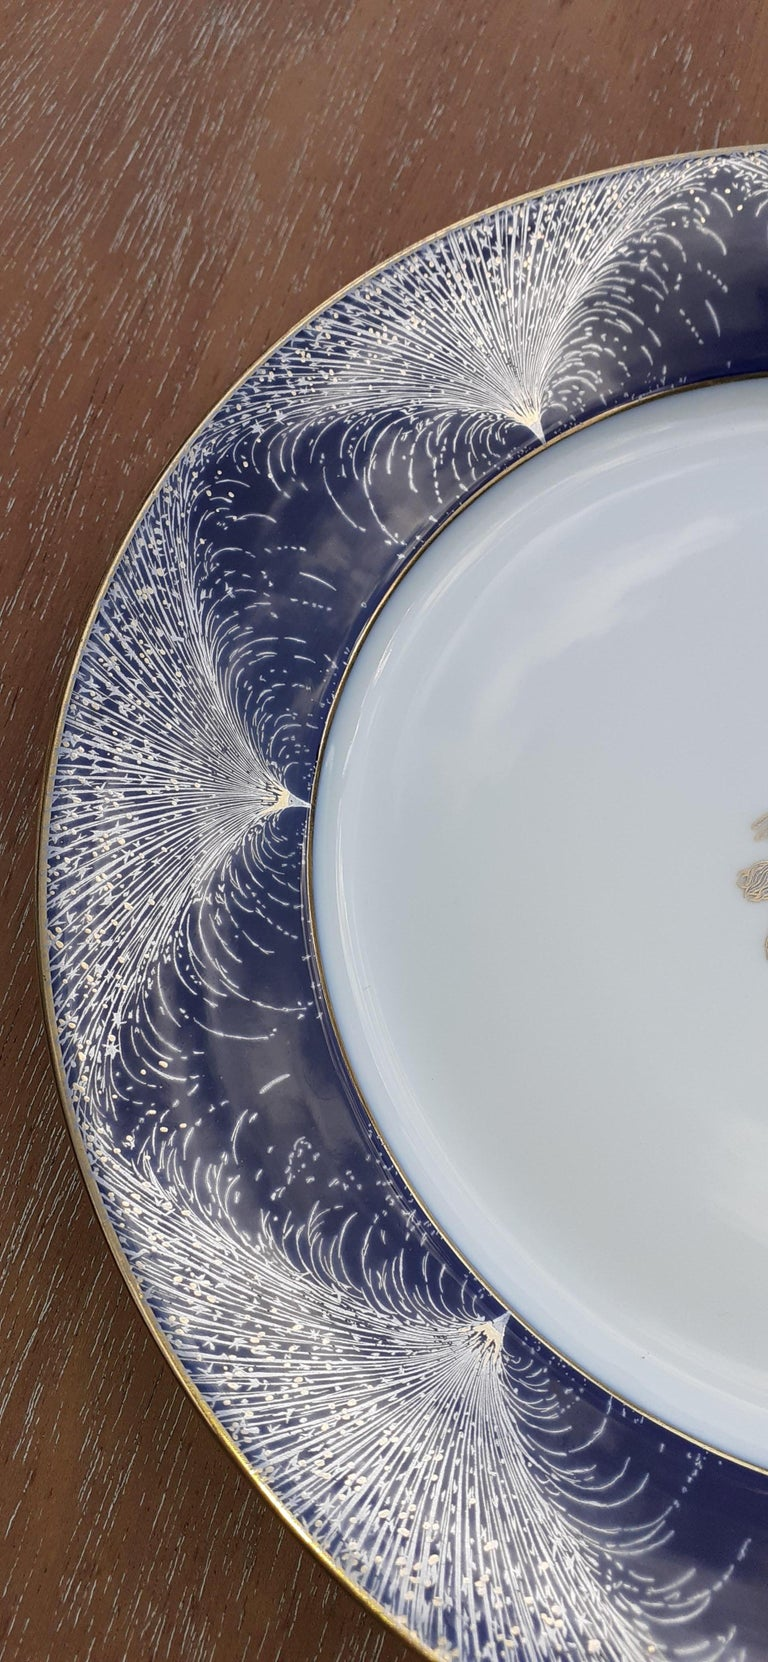 Blue Exceptional Hermès Plate Dish Feux d'Artifice 150th Anniversary Only 200 Pieces For Sale